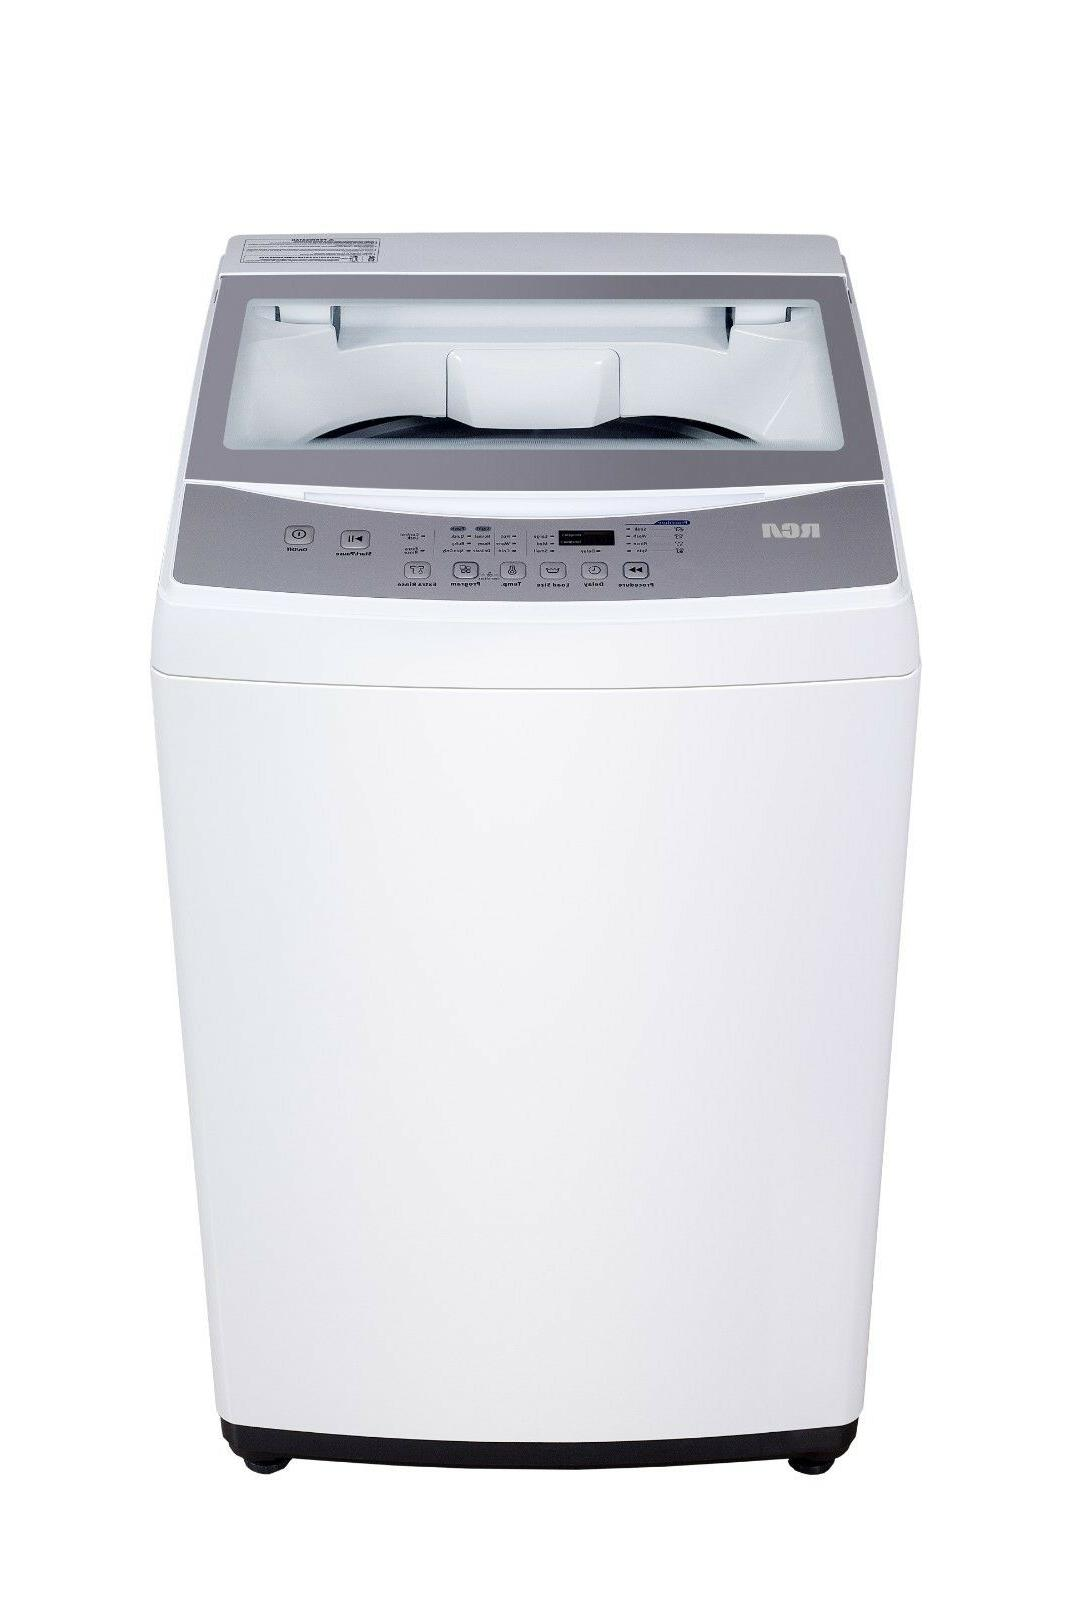 2.0 ft Washer, White, Automatic Cycles 3 Levels, Delay Start